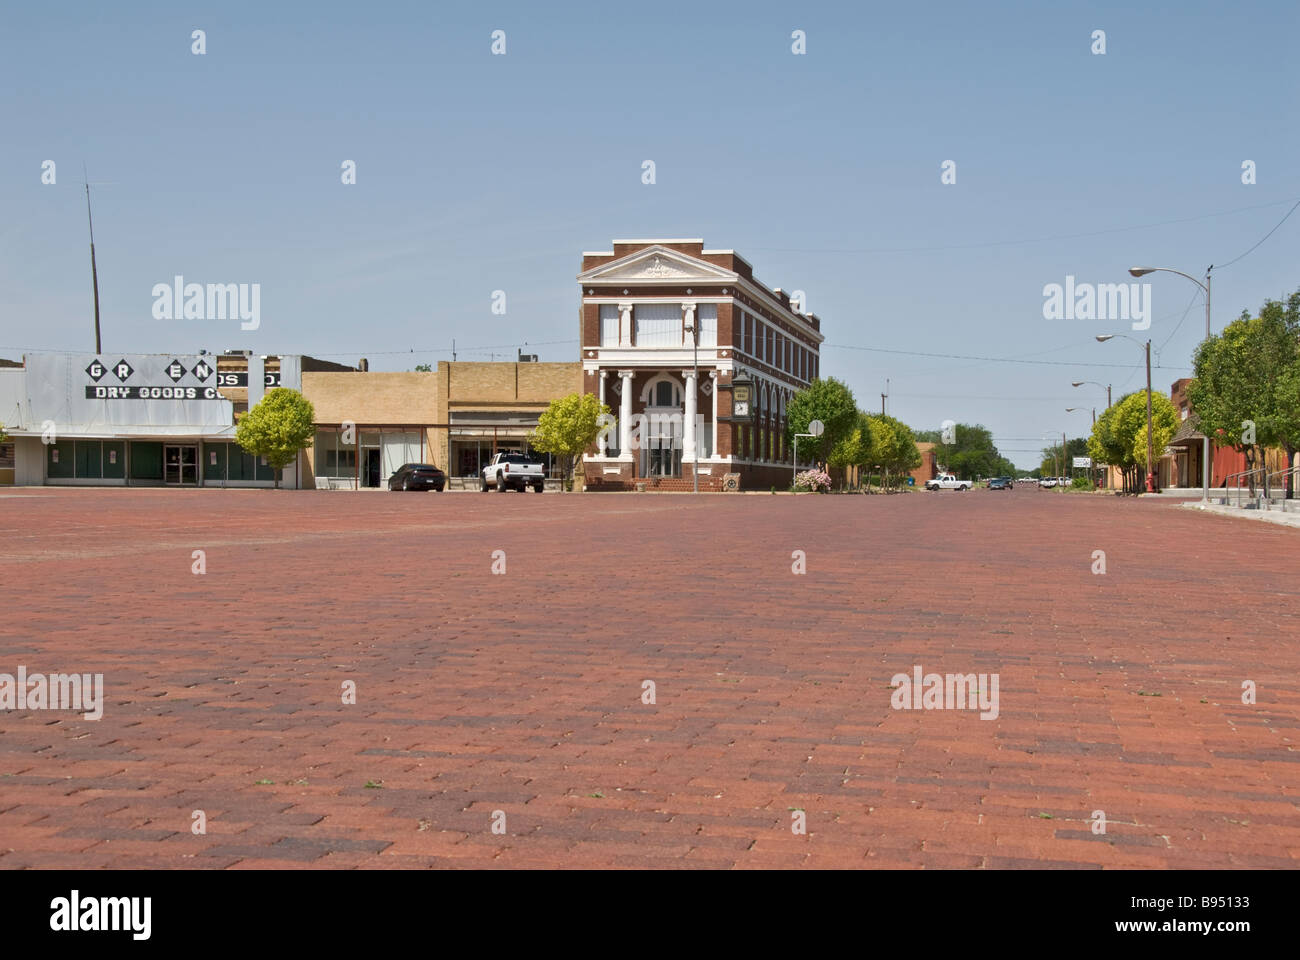 Texas Panhandle red brick downtown square in town of 'Memphis Texas' - Stock Image